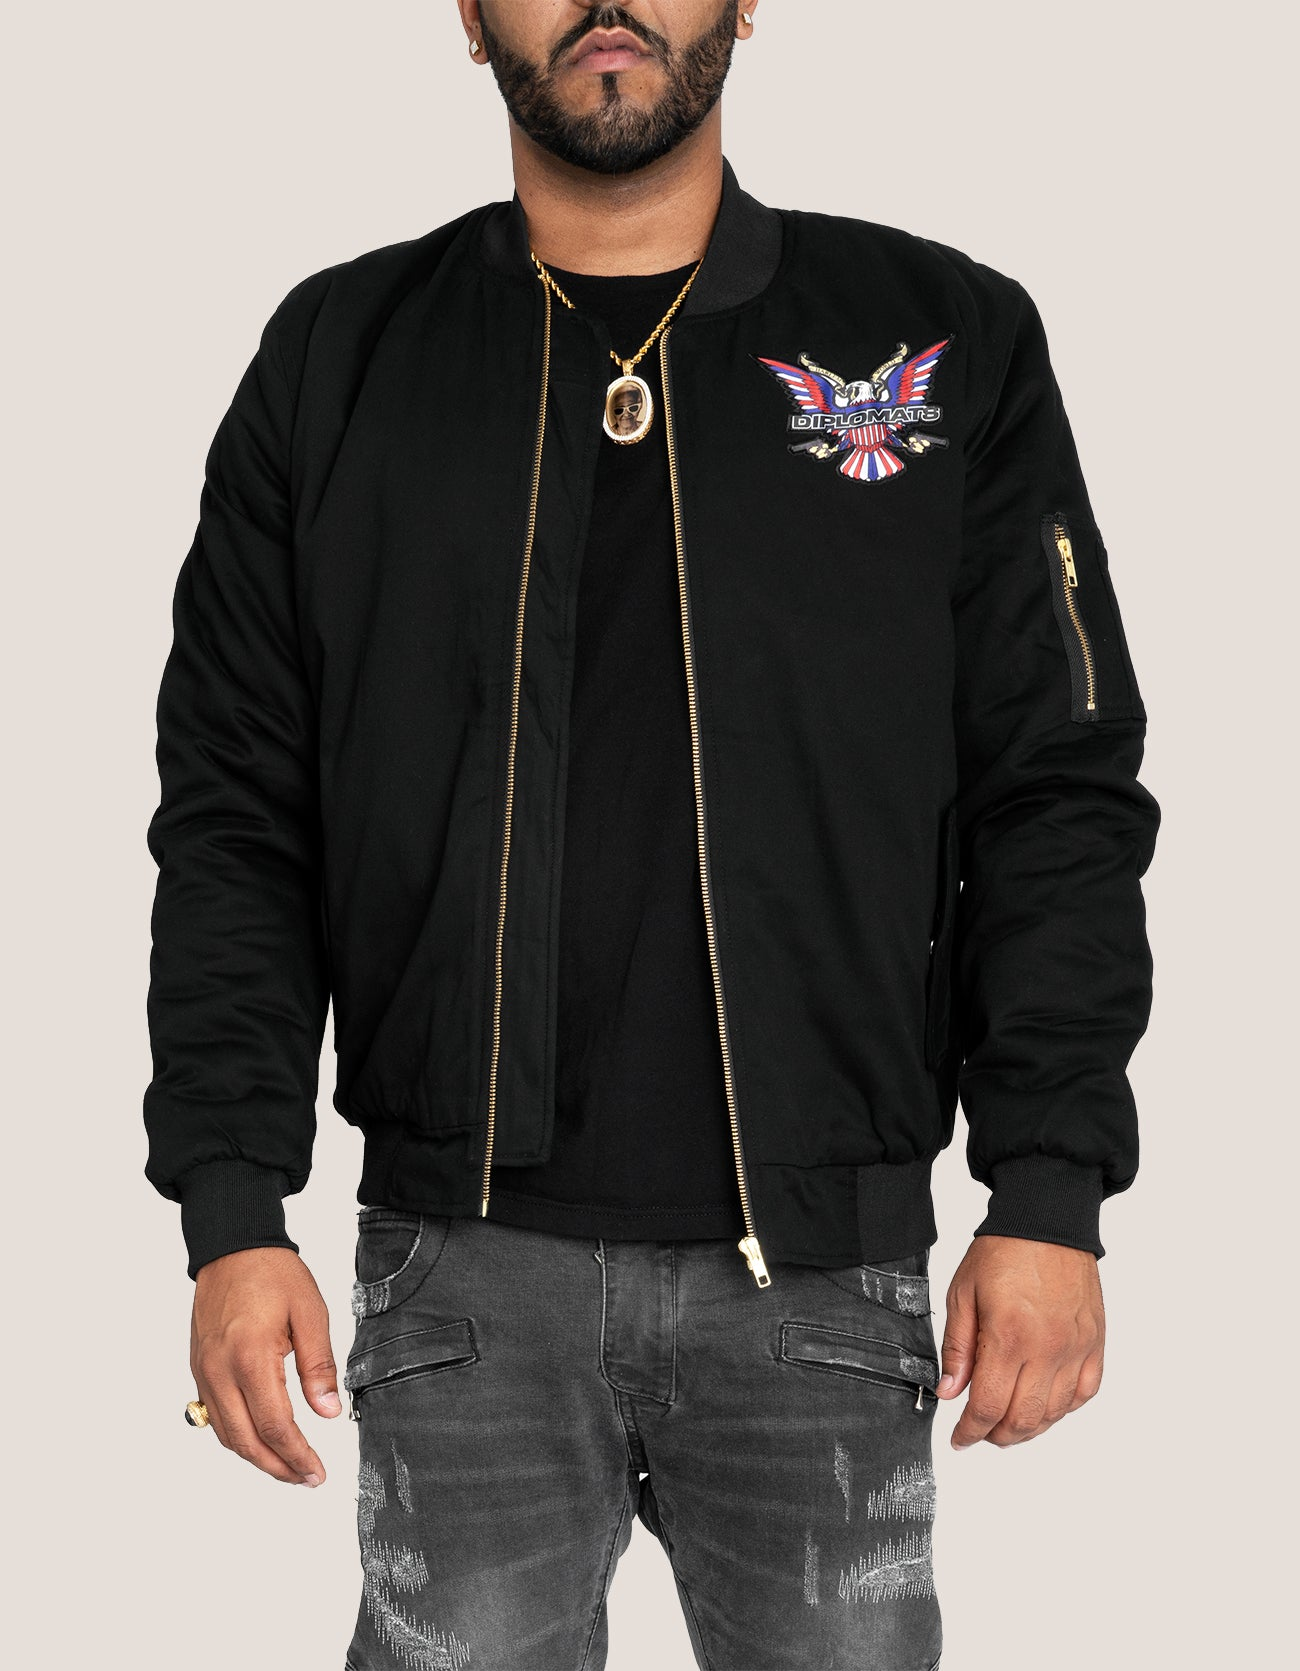 DIPSET Couture Black Bomber Jacket